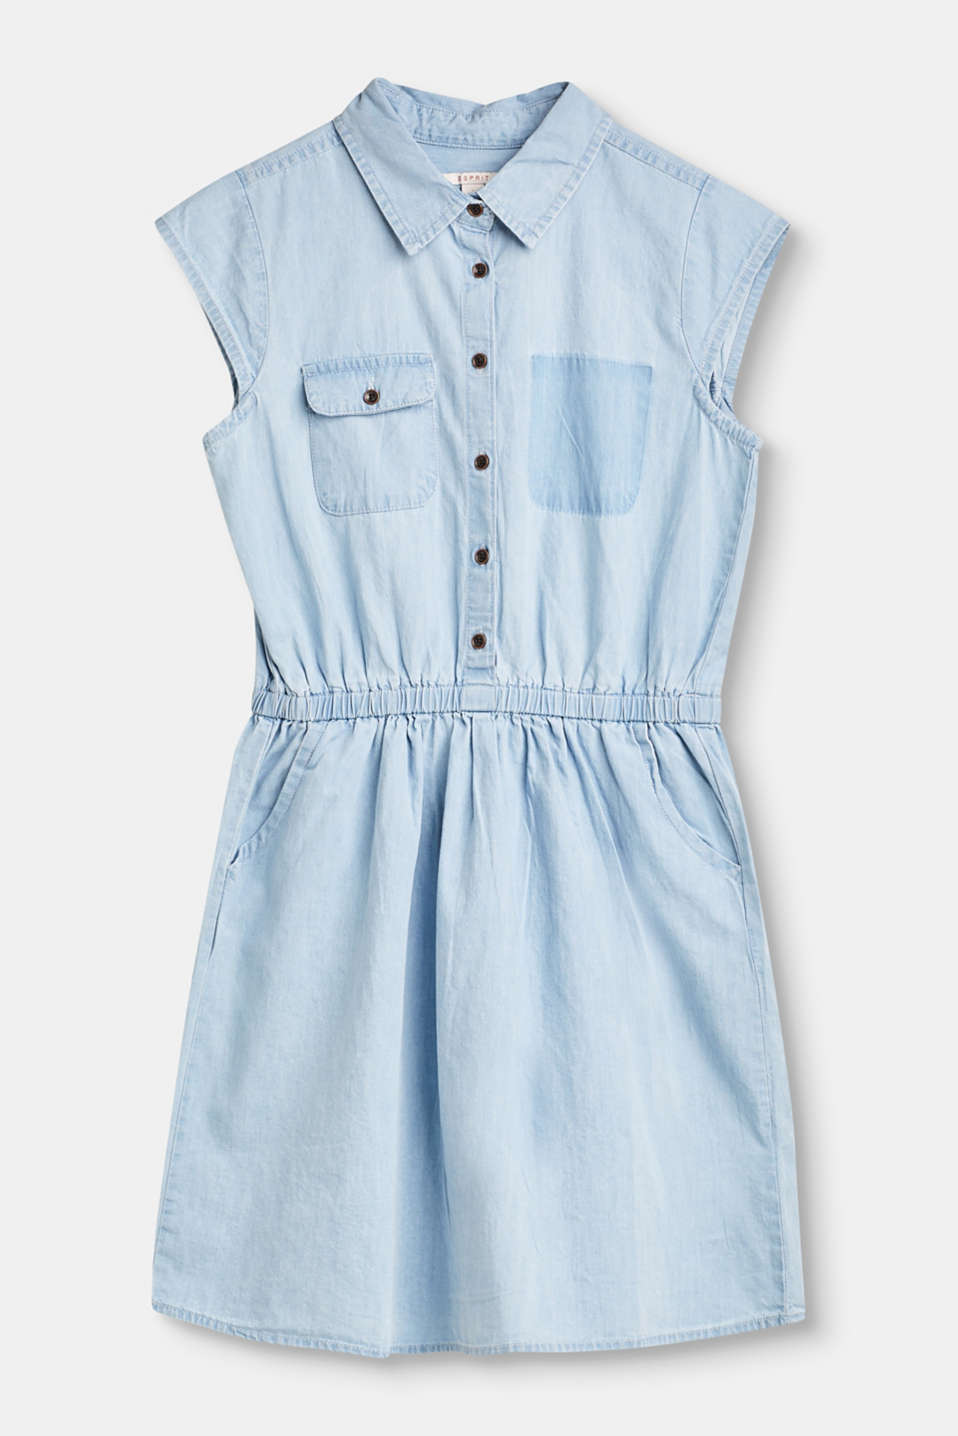 This denim dress is a super-comfy favourite for the summer thanks to the pure cotton fabric and the simple shirt blouse styling.